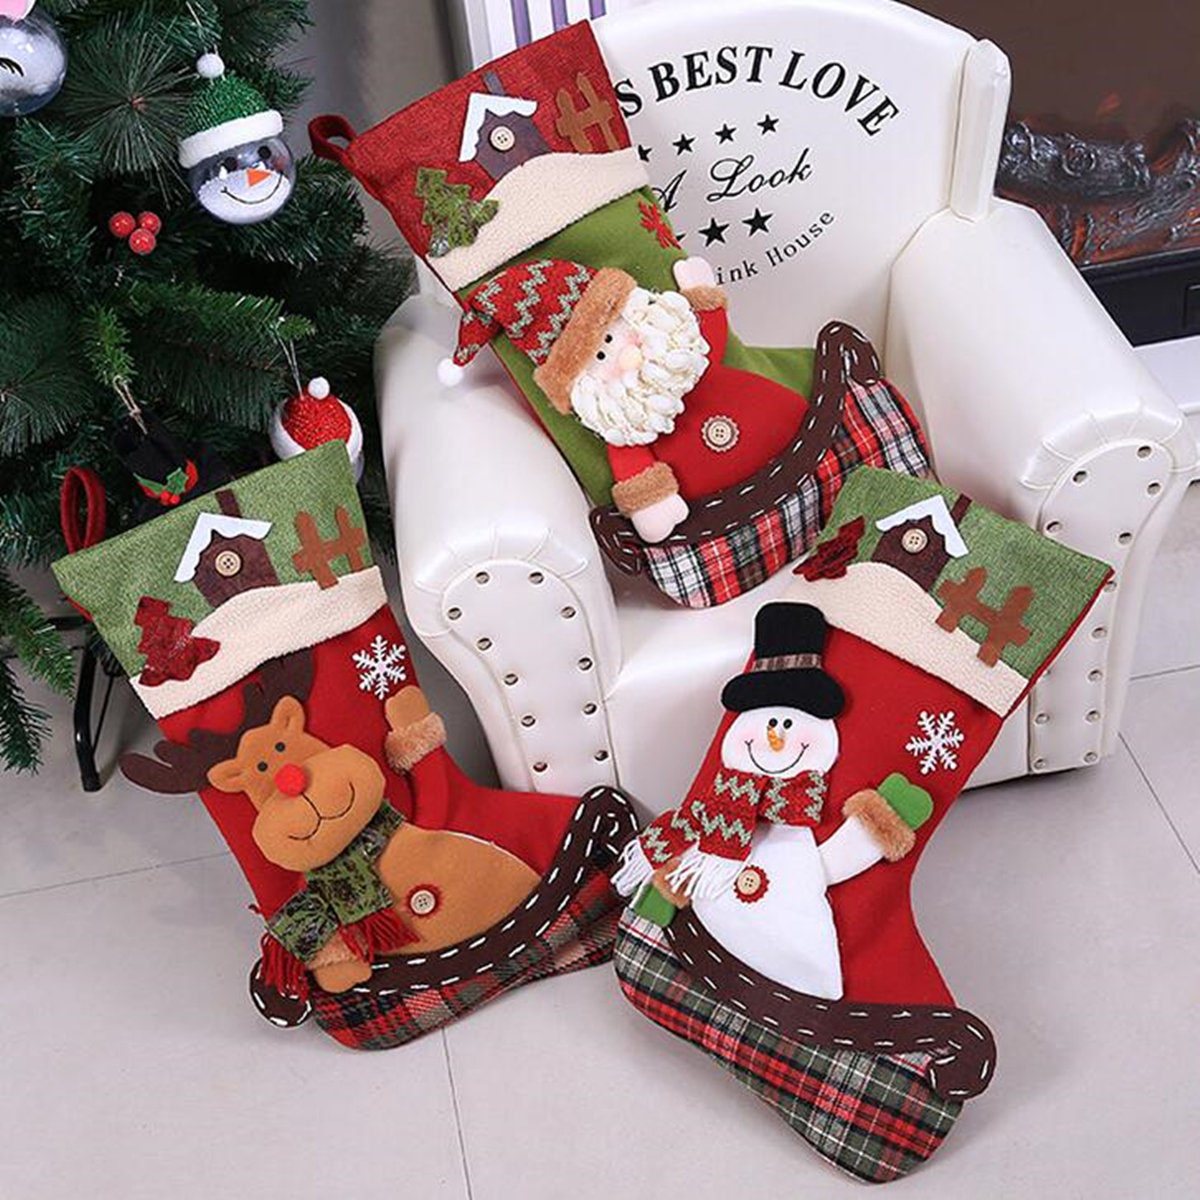 Candy Christmas Tree Decorations.Christmas Stockings Christmas Tree Decorations Gift Candy Bags